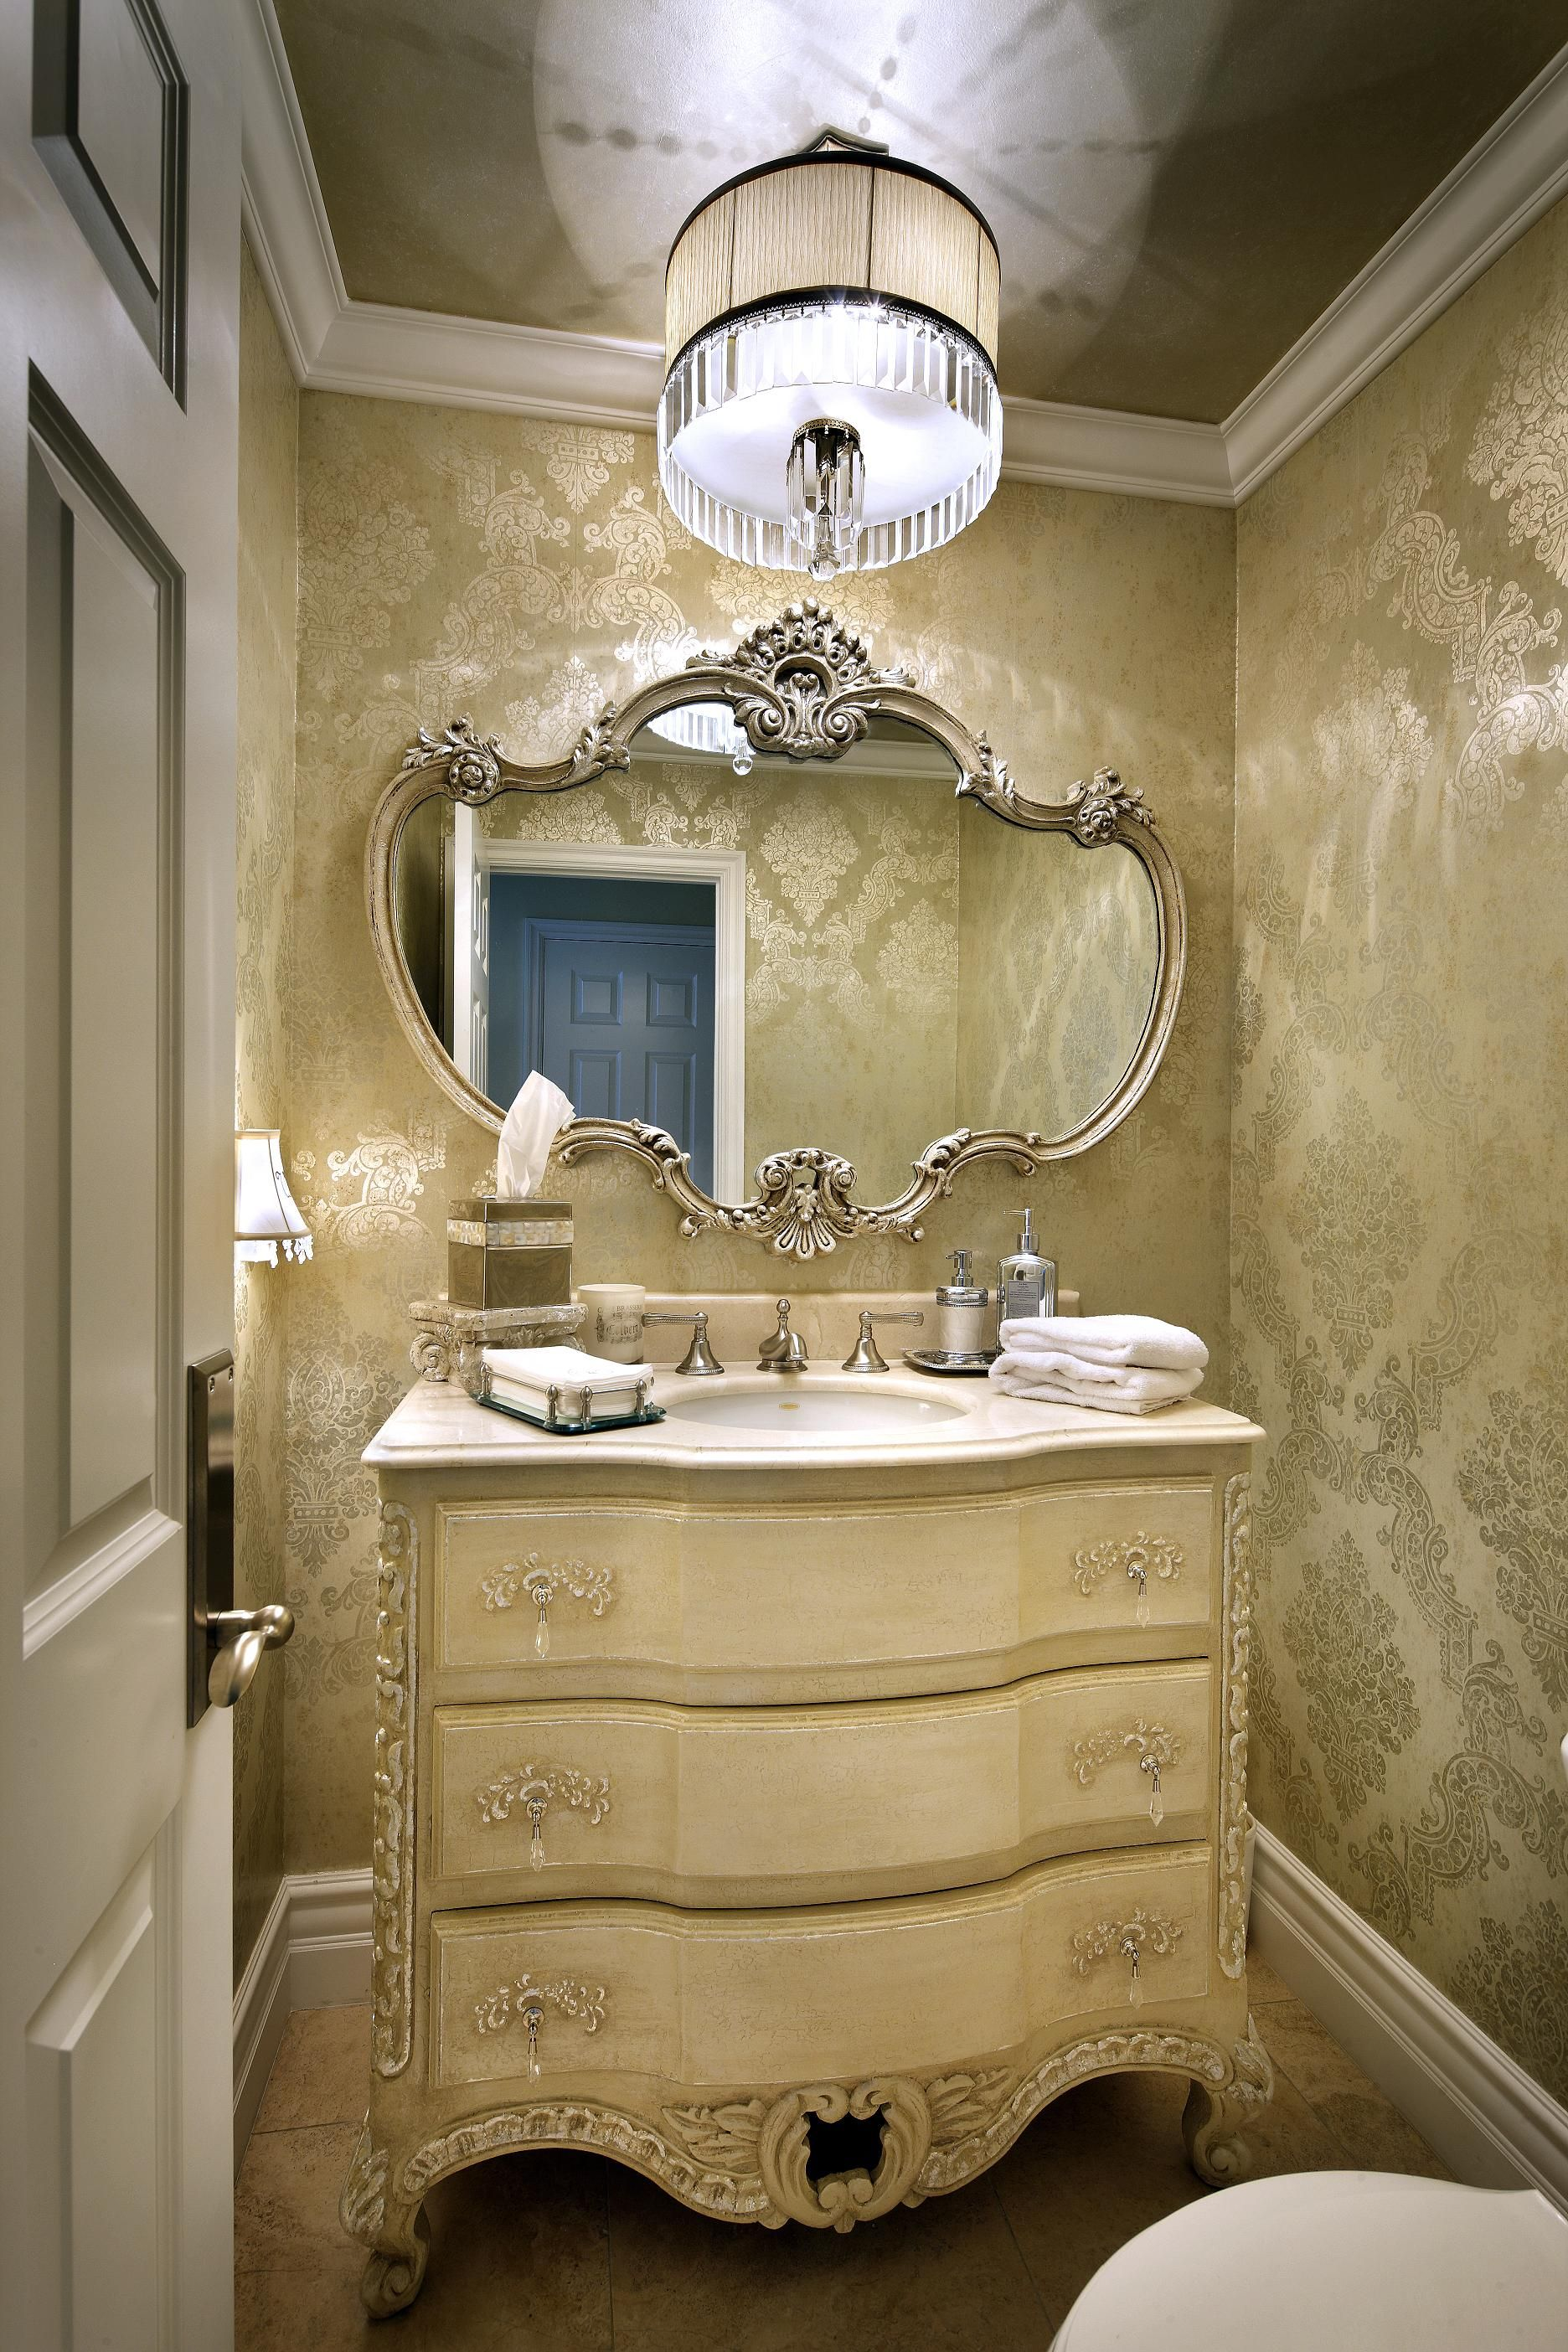 An Easy And Inexpensive Update To This Powder Room Included Changing The Faucet From Brass To